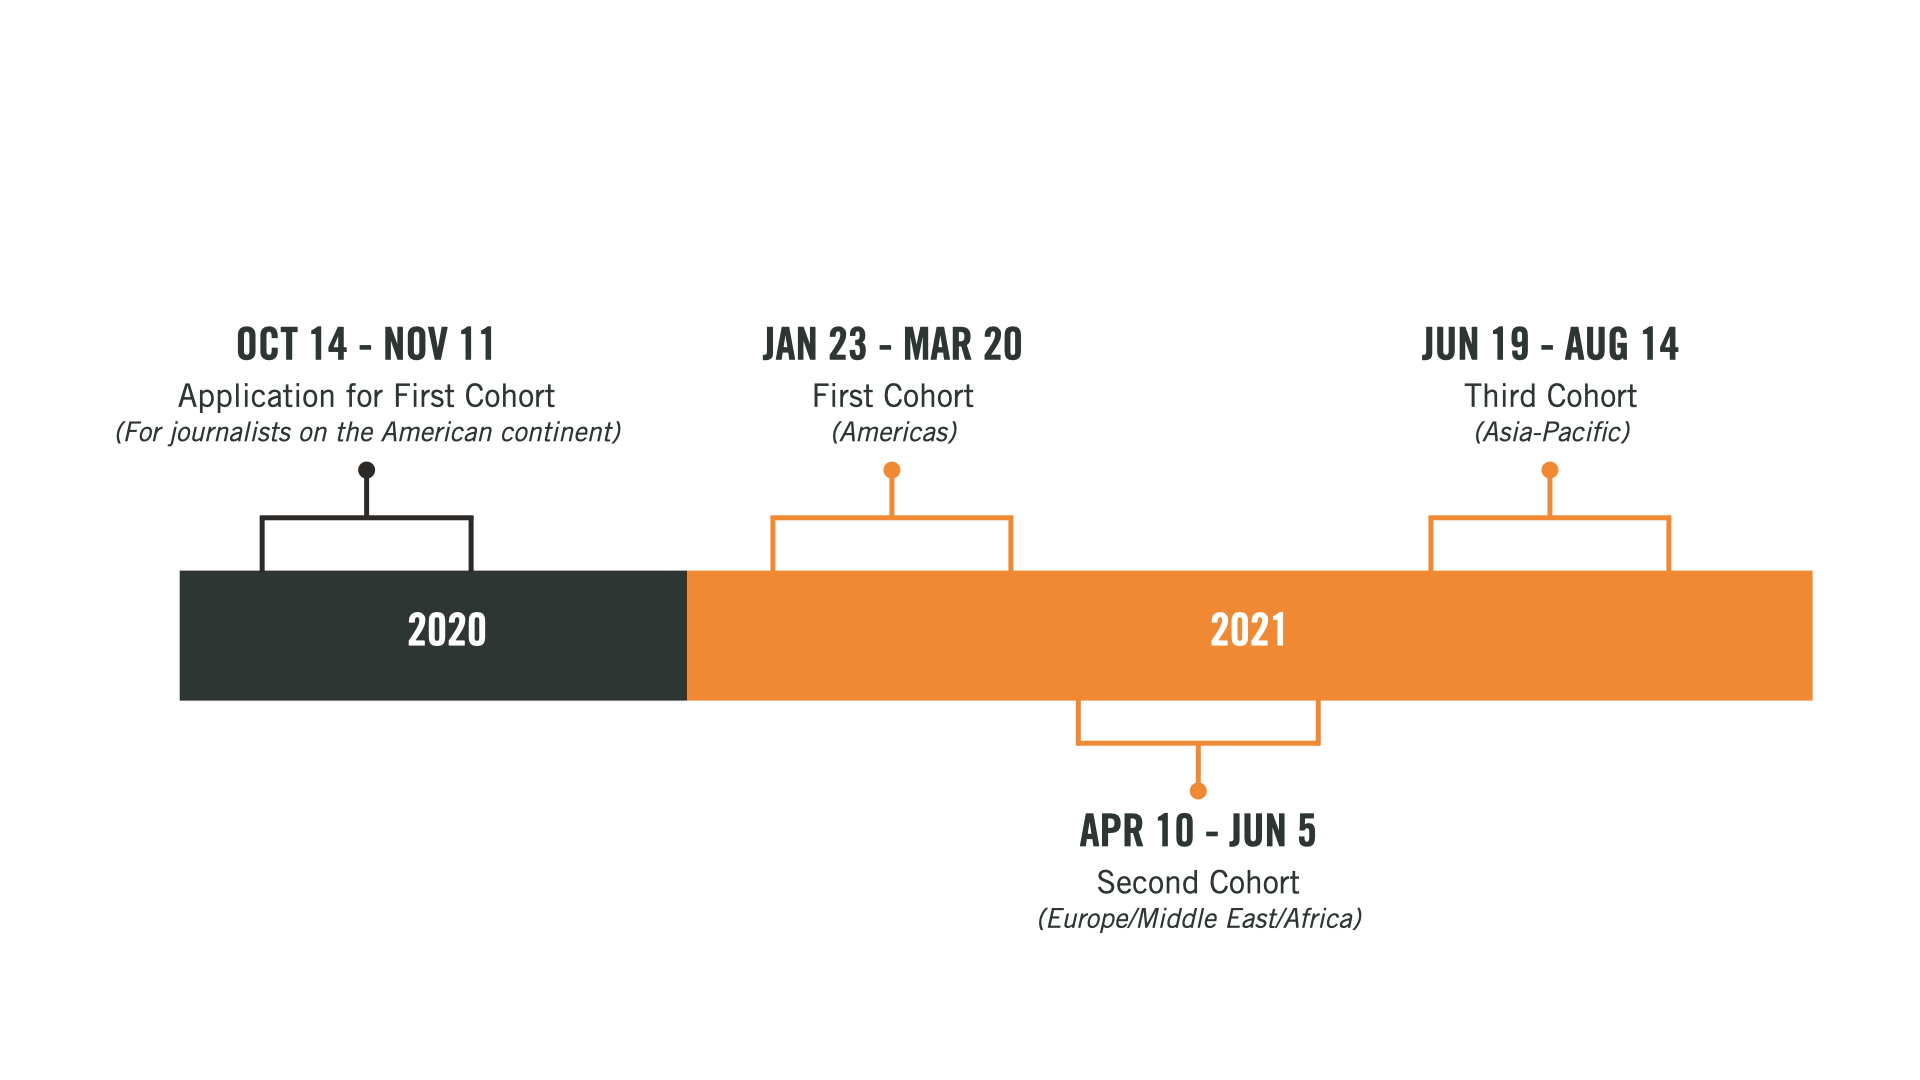 This timeline graphic shows the important program dates. The Application for the First Cohort, which includes only journalists from the American continent, starts on Oct 14, 2020 and ends on Nov 11, 2020. The first cohort (Americas) runs between January 23 and March 20, 2021. The second cohort (Europe, Middle East and Africa) runs betweenApril 10 and June 5, 2021. The third cohort (Asia-Pacific) will runJune 19 until August 14, 2021.